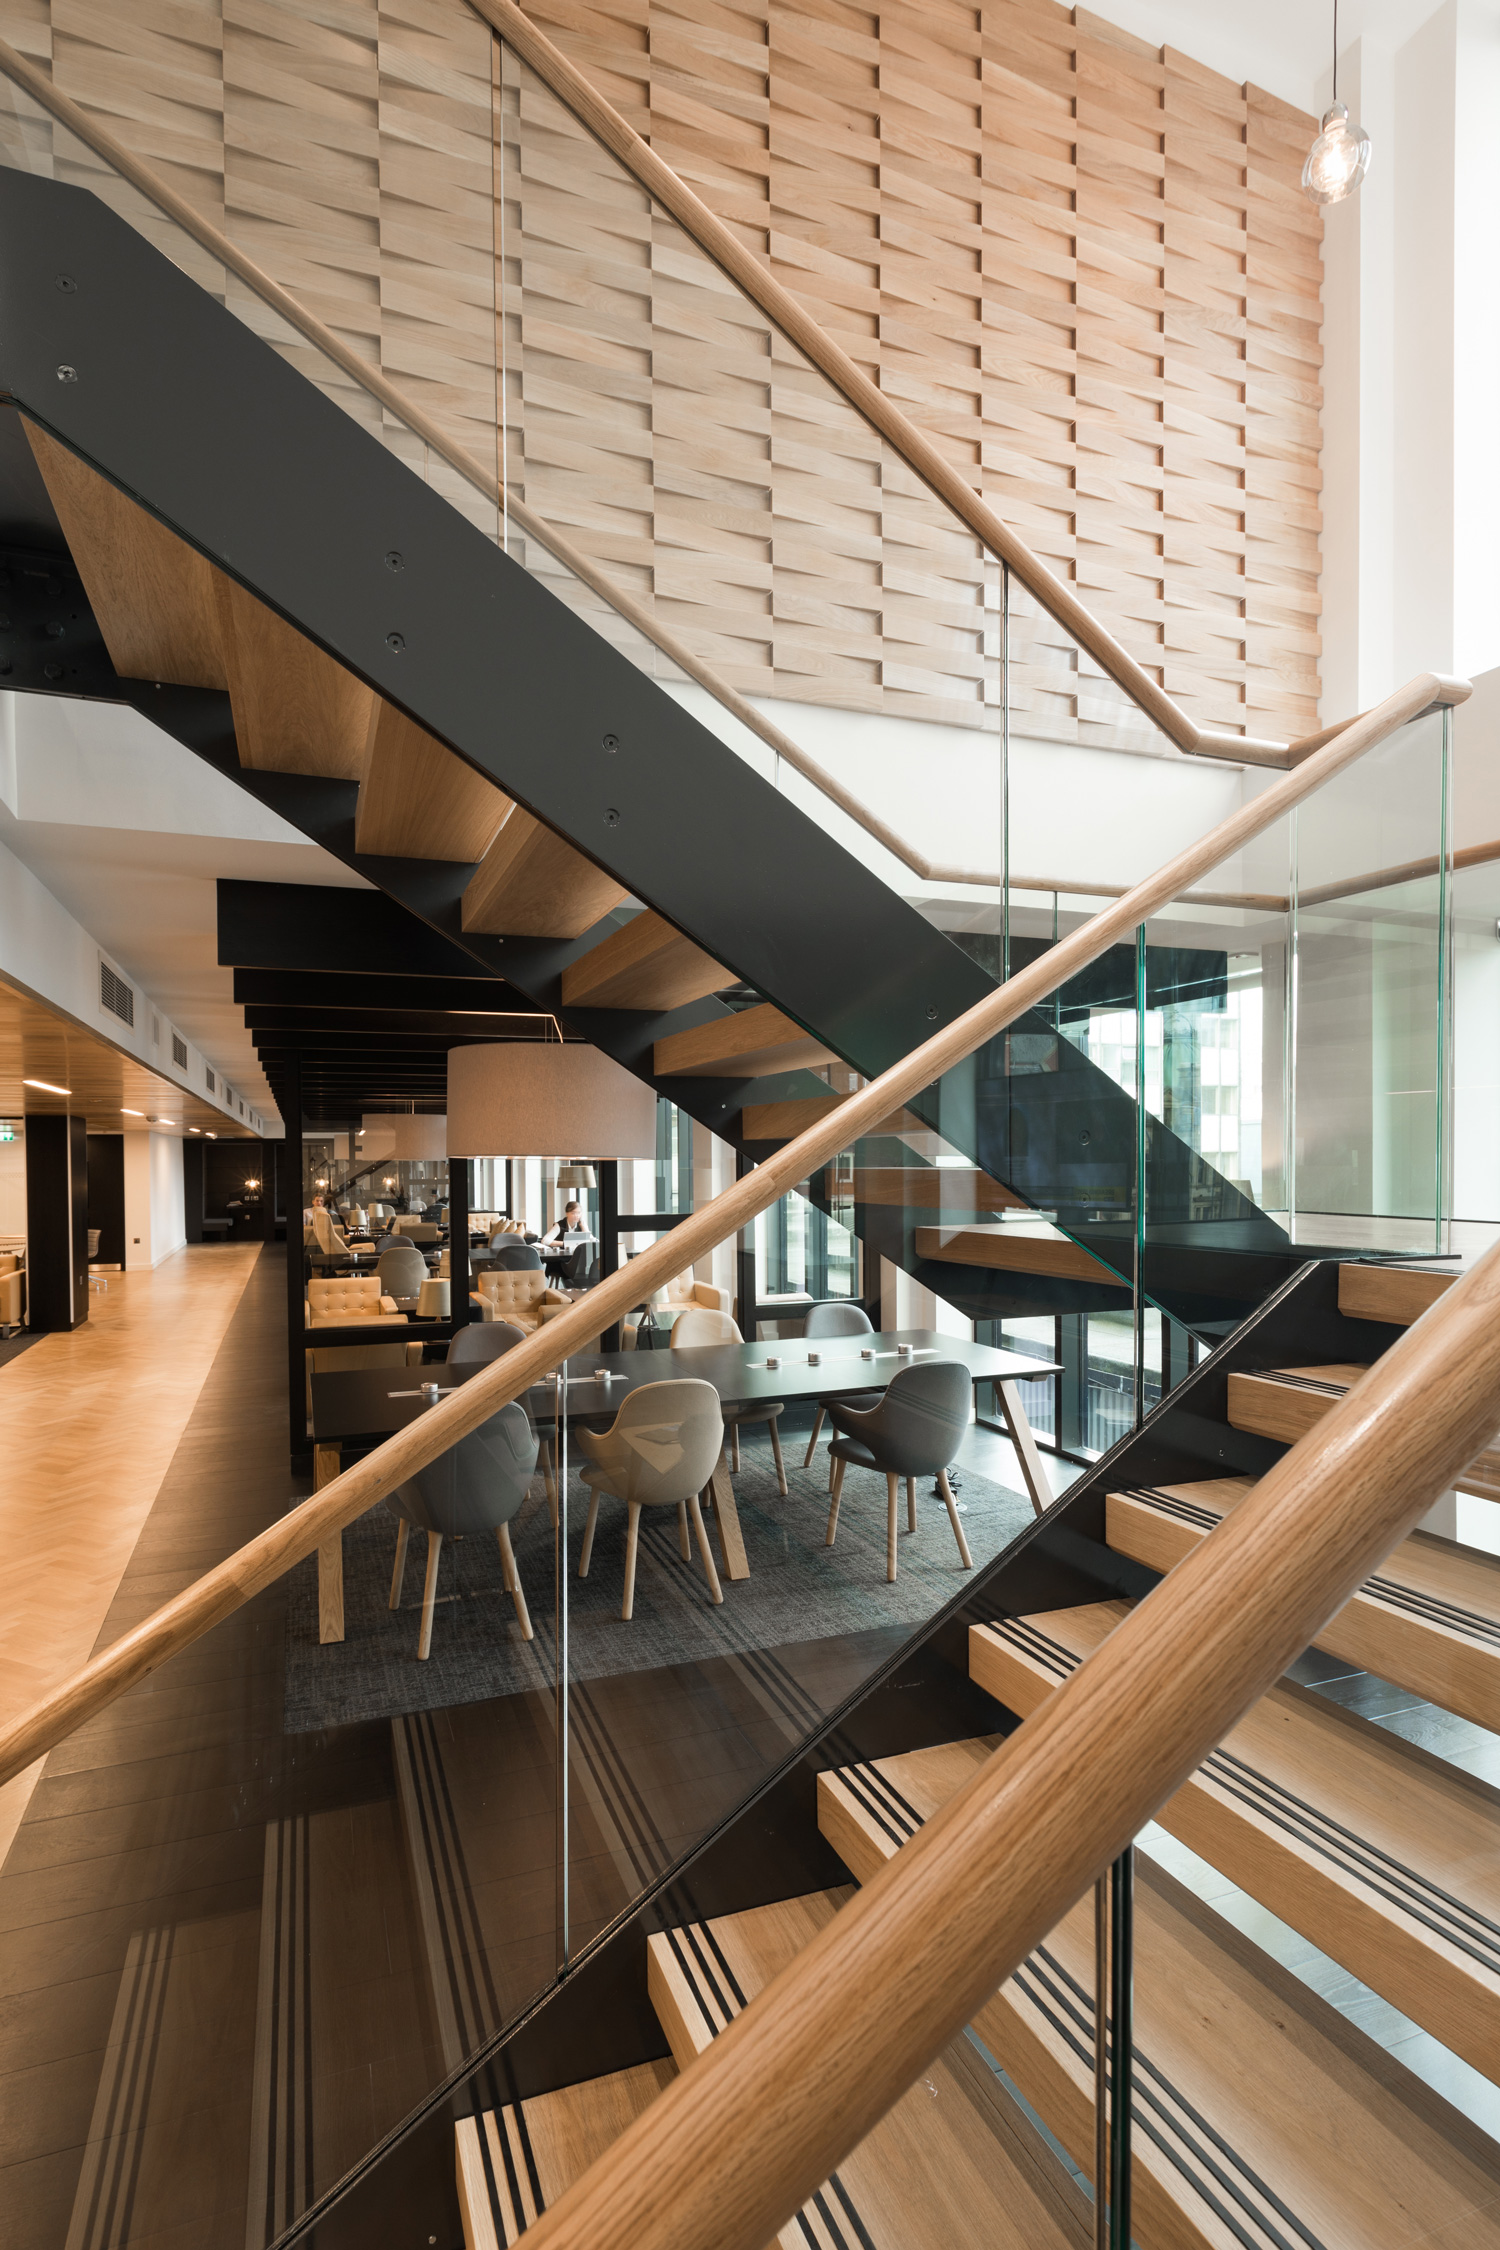 Office interior with timber and black staircase